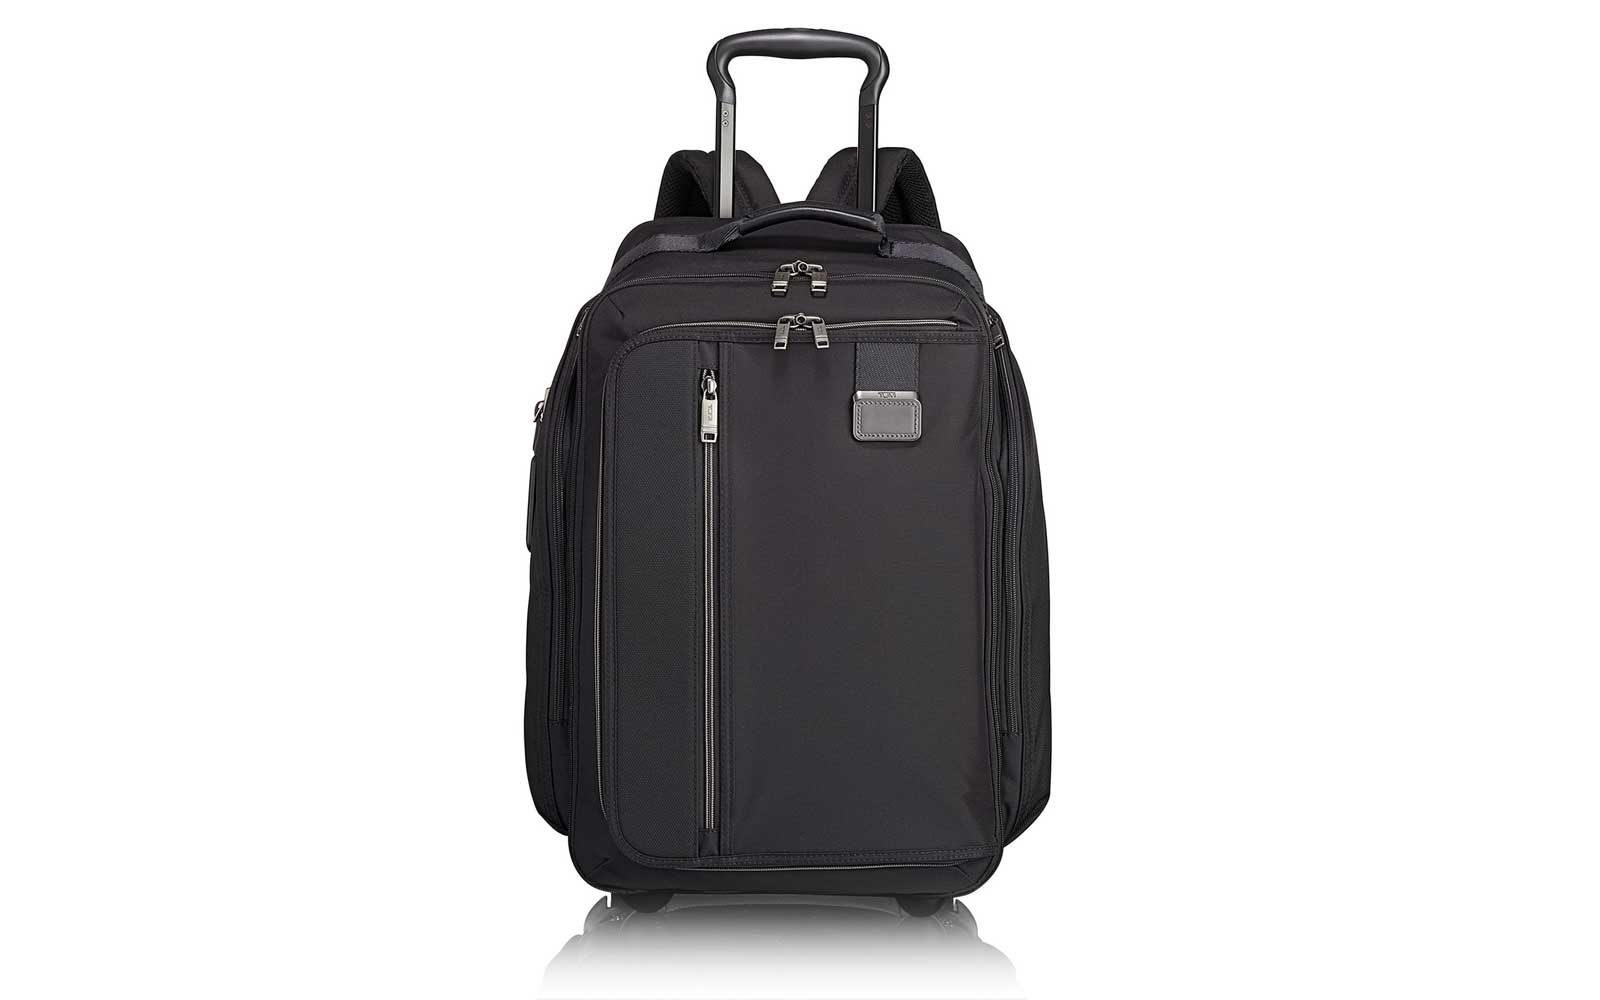 Tumi Black Rolling Backpack